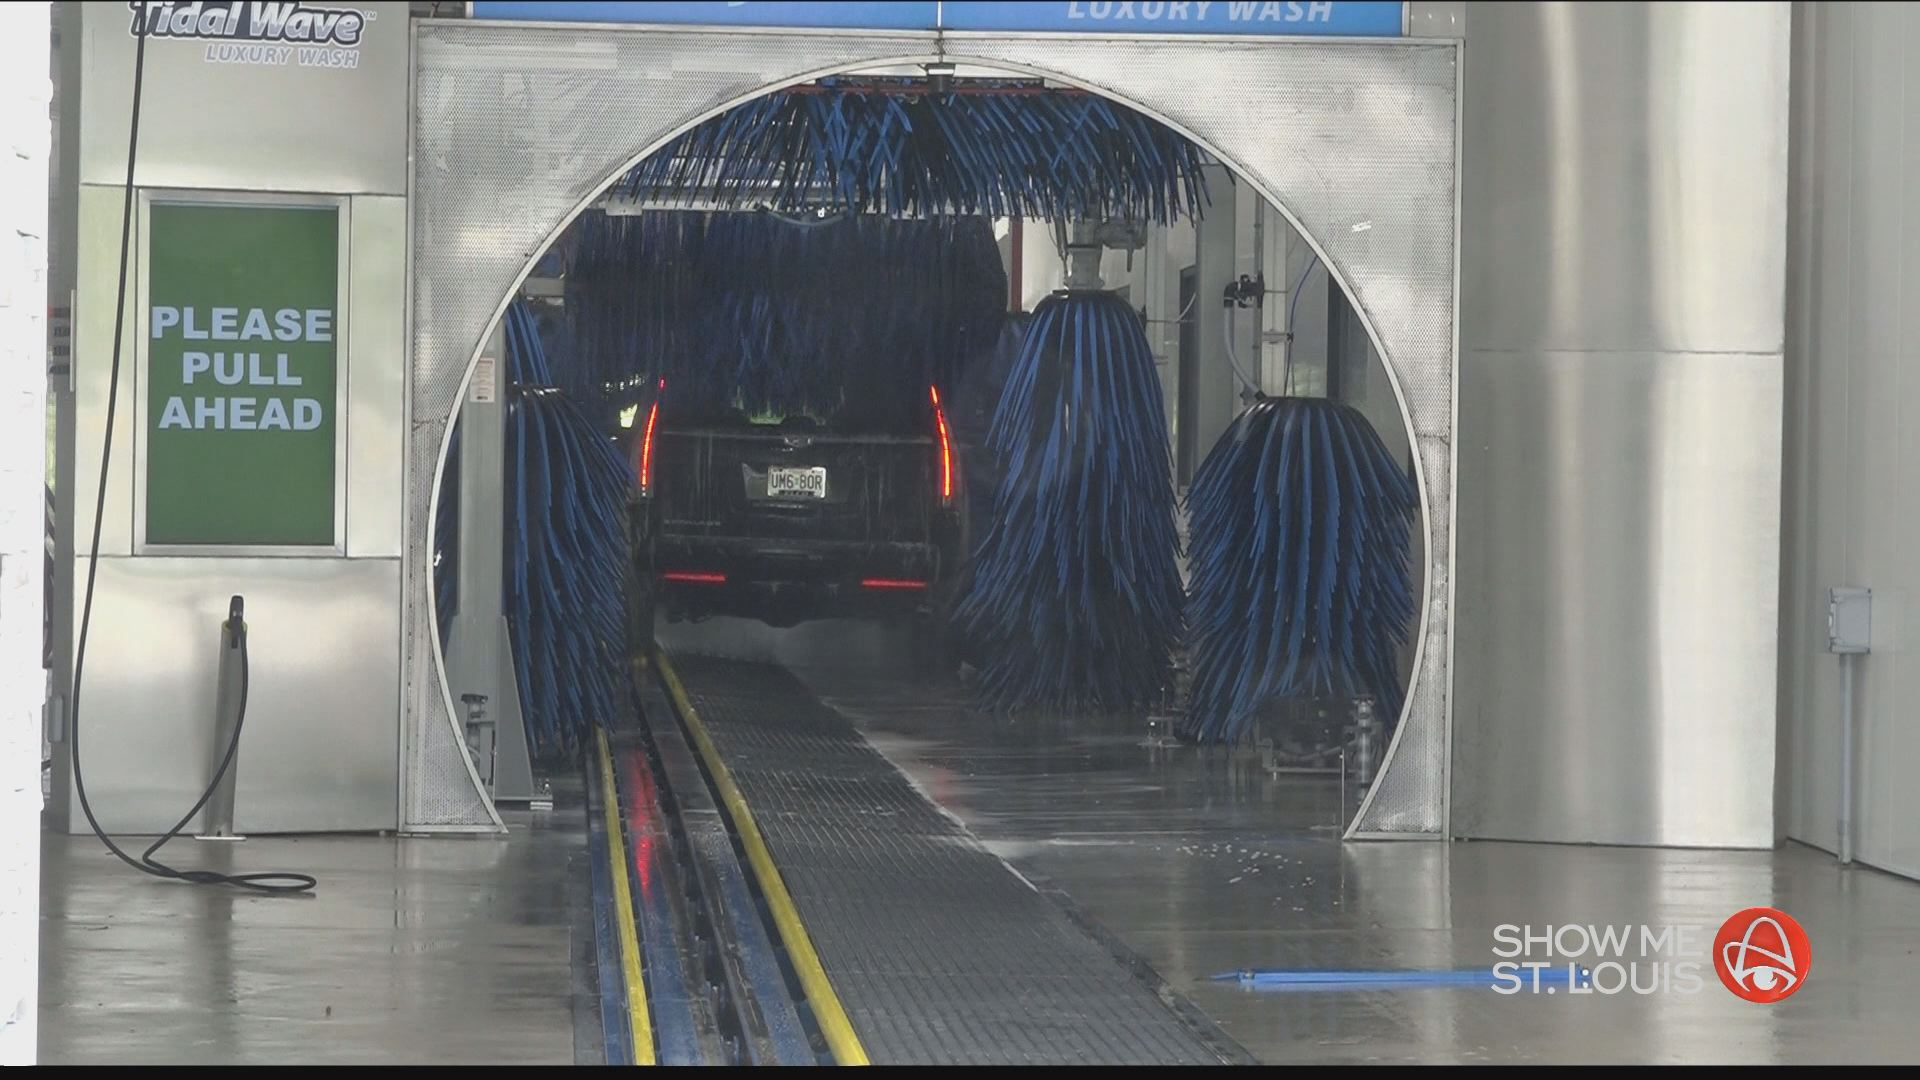 Gas Station With Drive Thru Car Wash >> Tidal Wave Luxury Car Wash offering free car washes Saturday at Grand Opening | KSDK.com